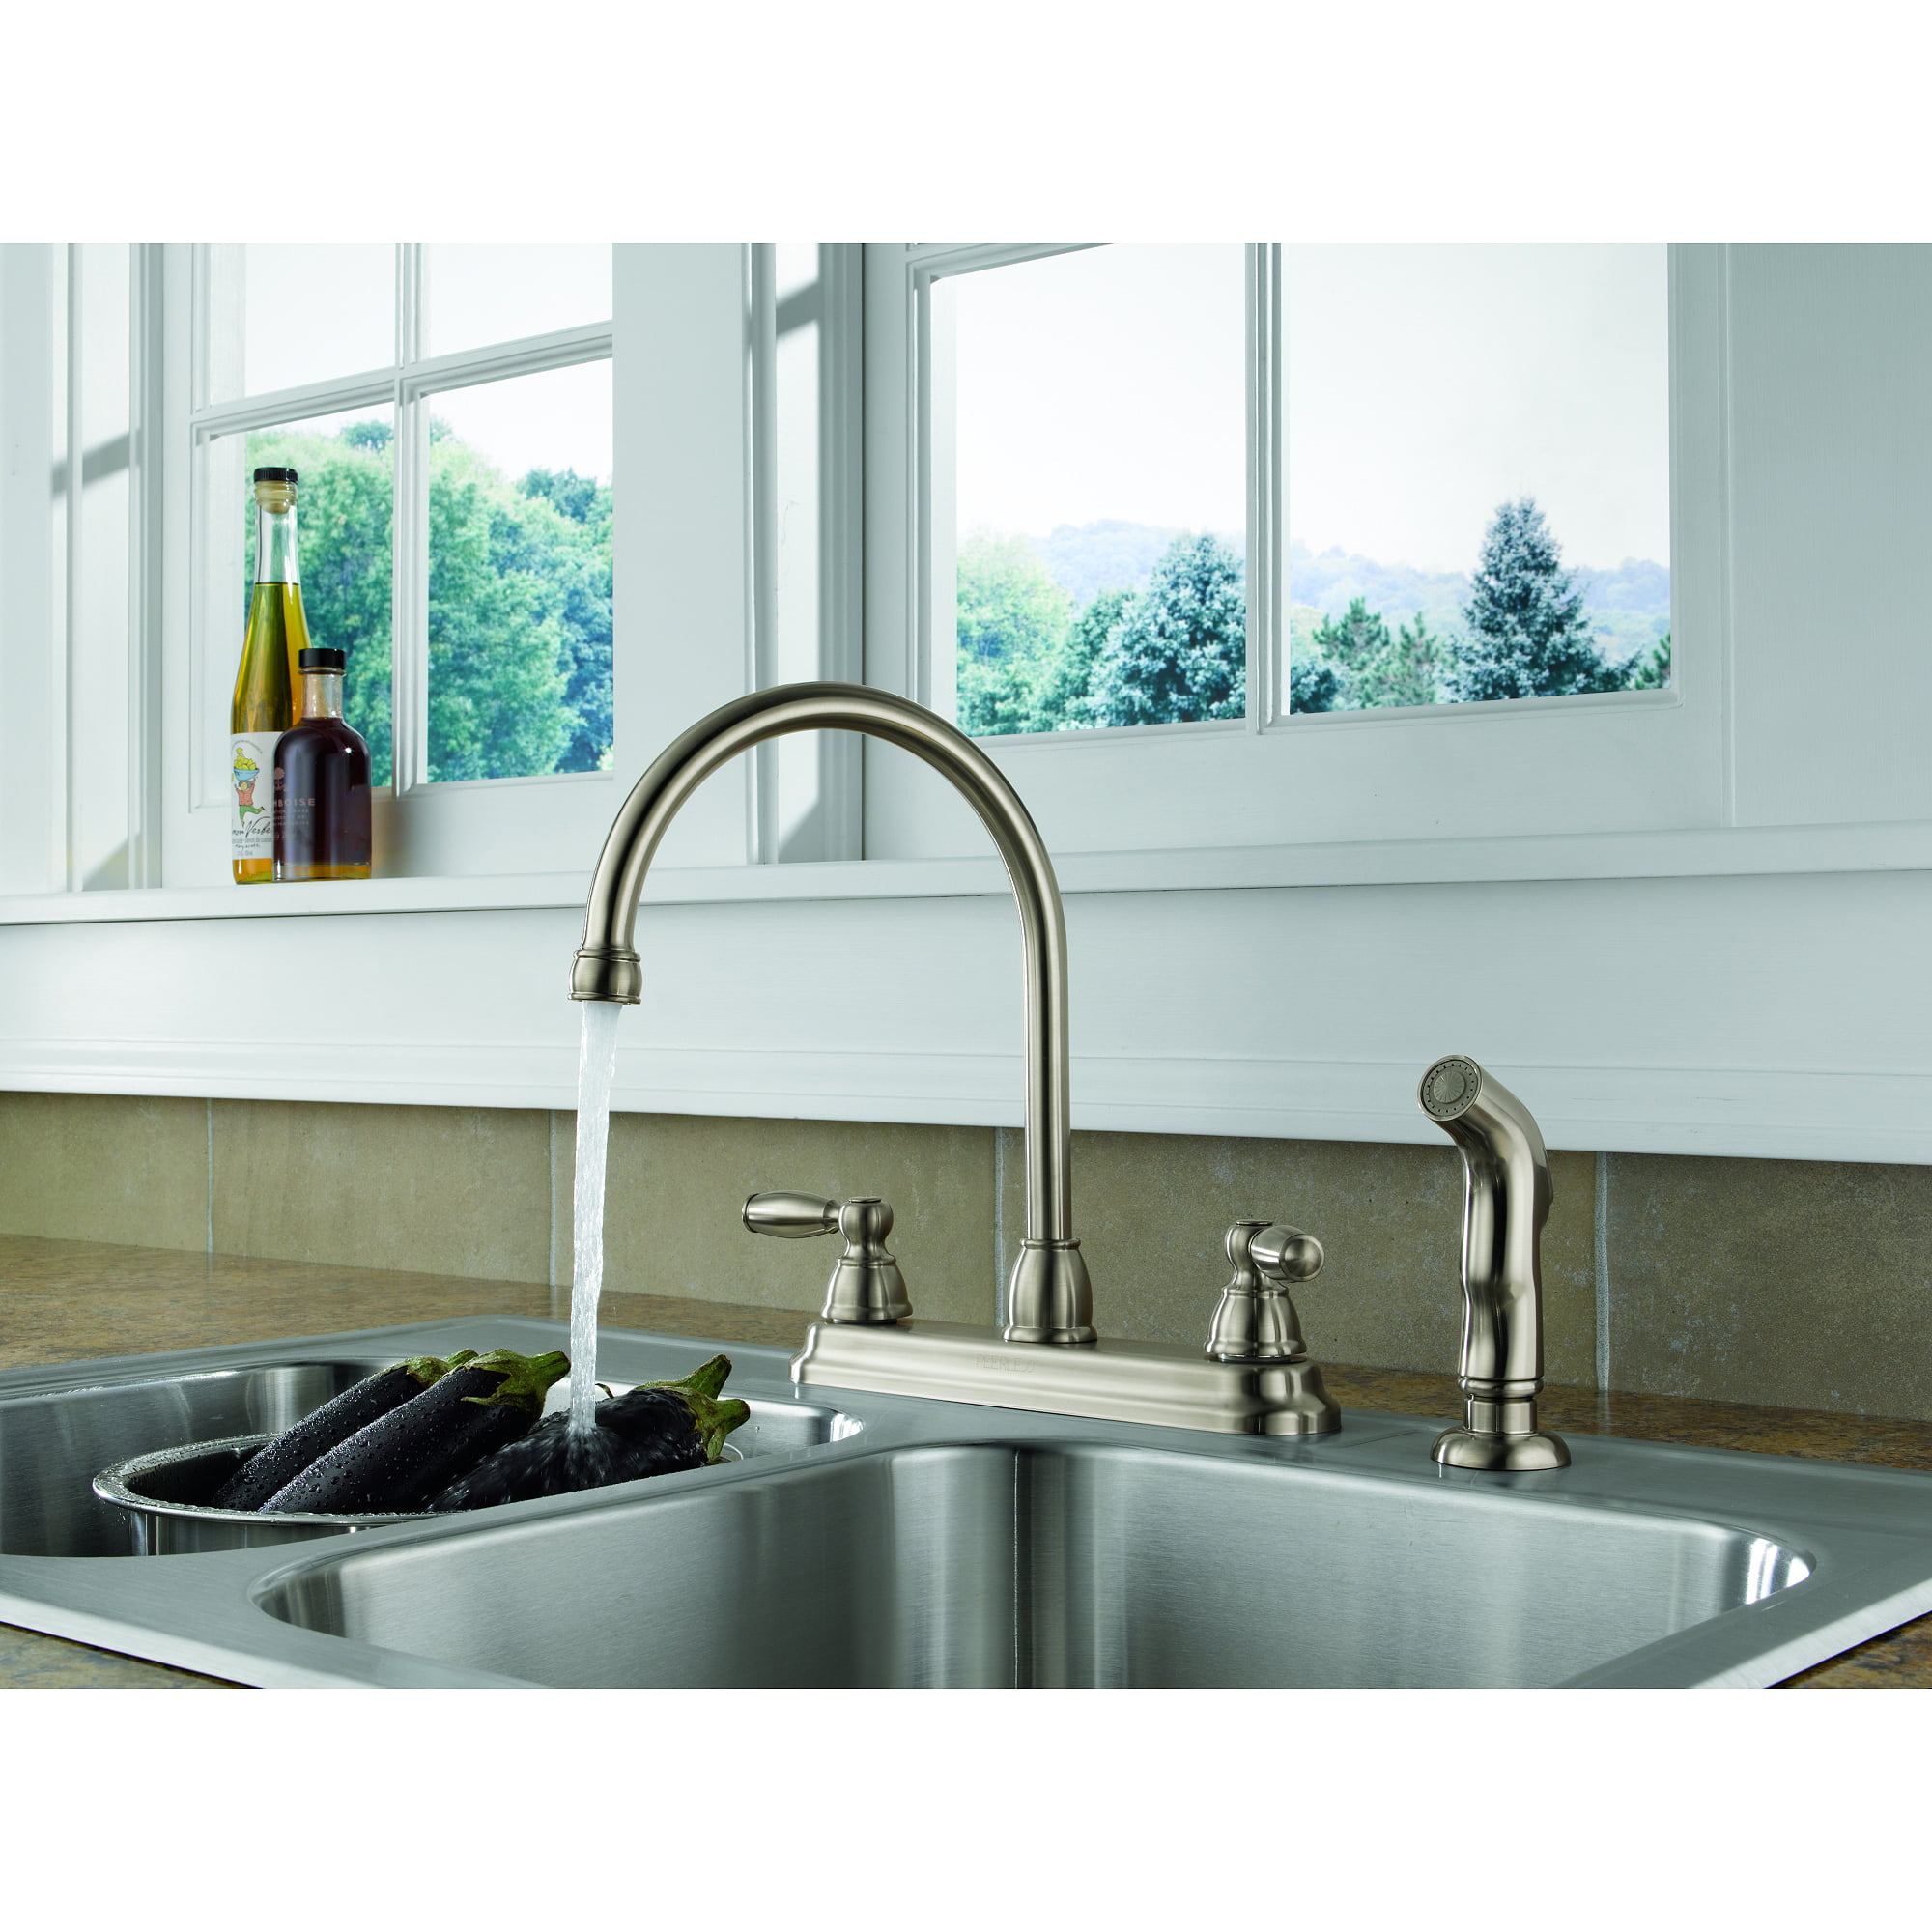 Peerless 2 handle kitchen faucet with side spray stainless steel walmart com